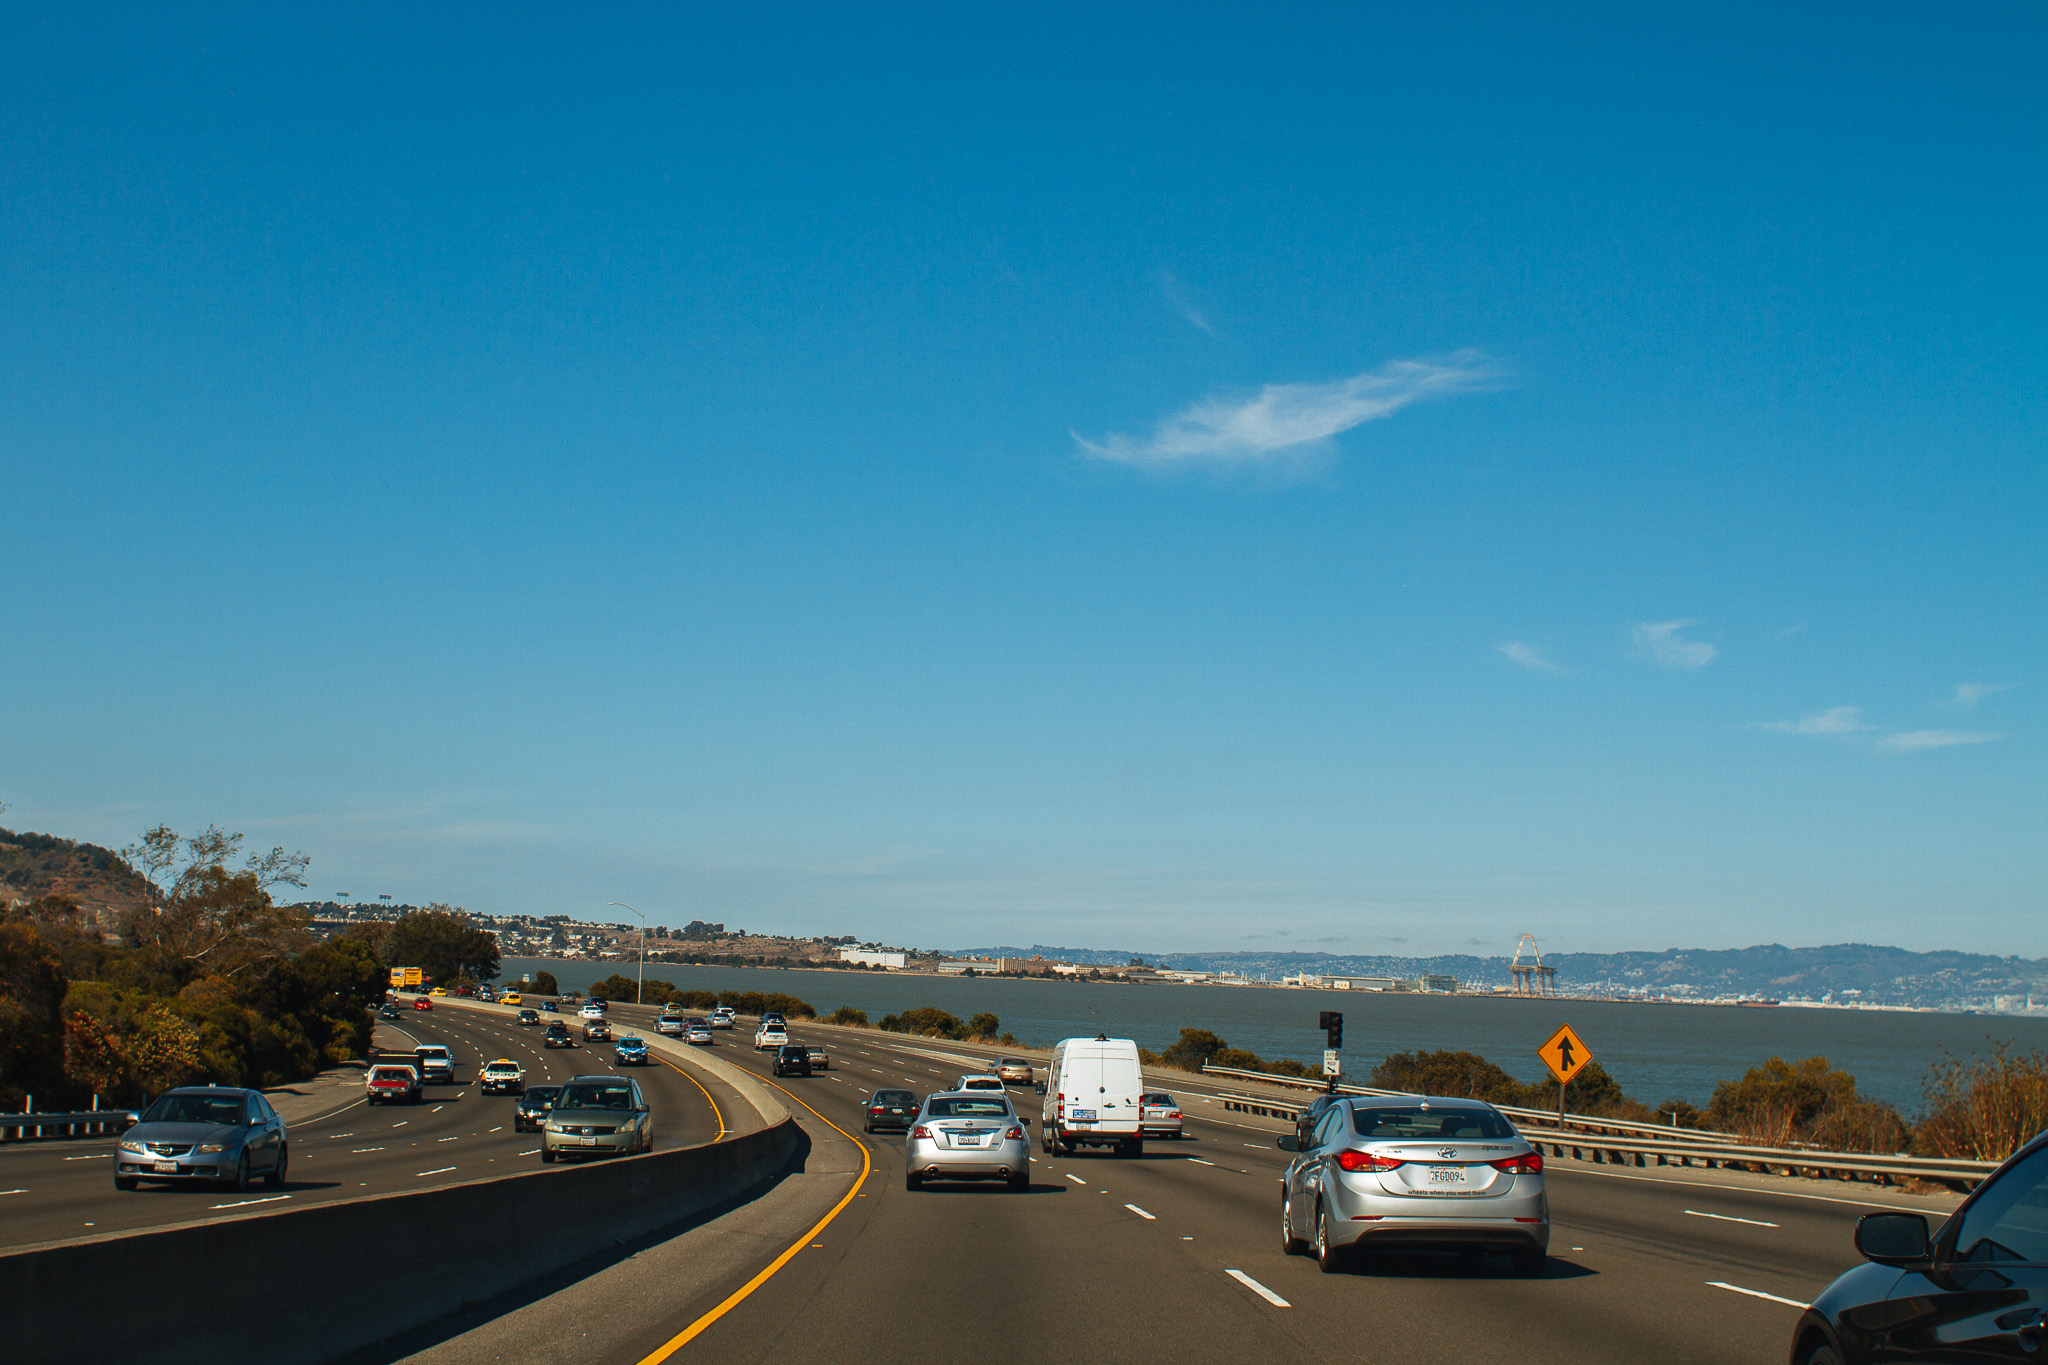 san francisco_intercontinental_golden gate_soma_photographer-1.jpg